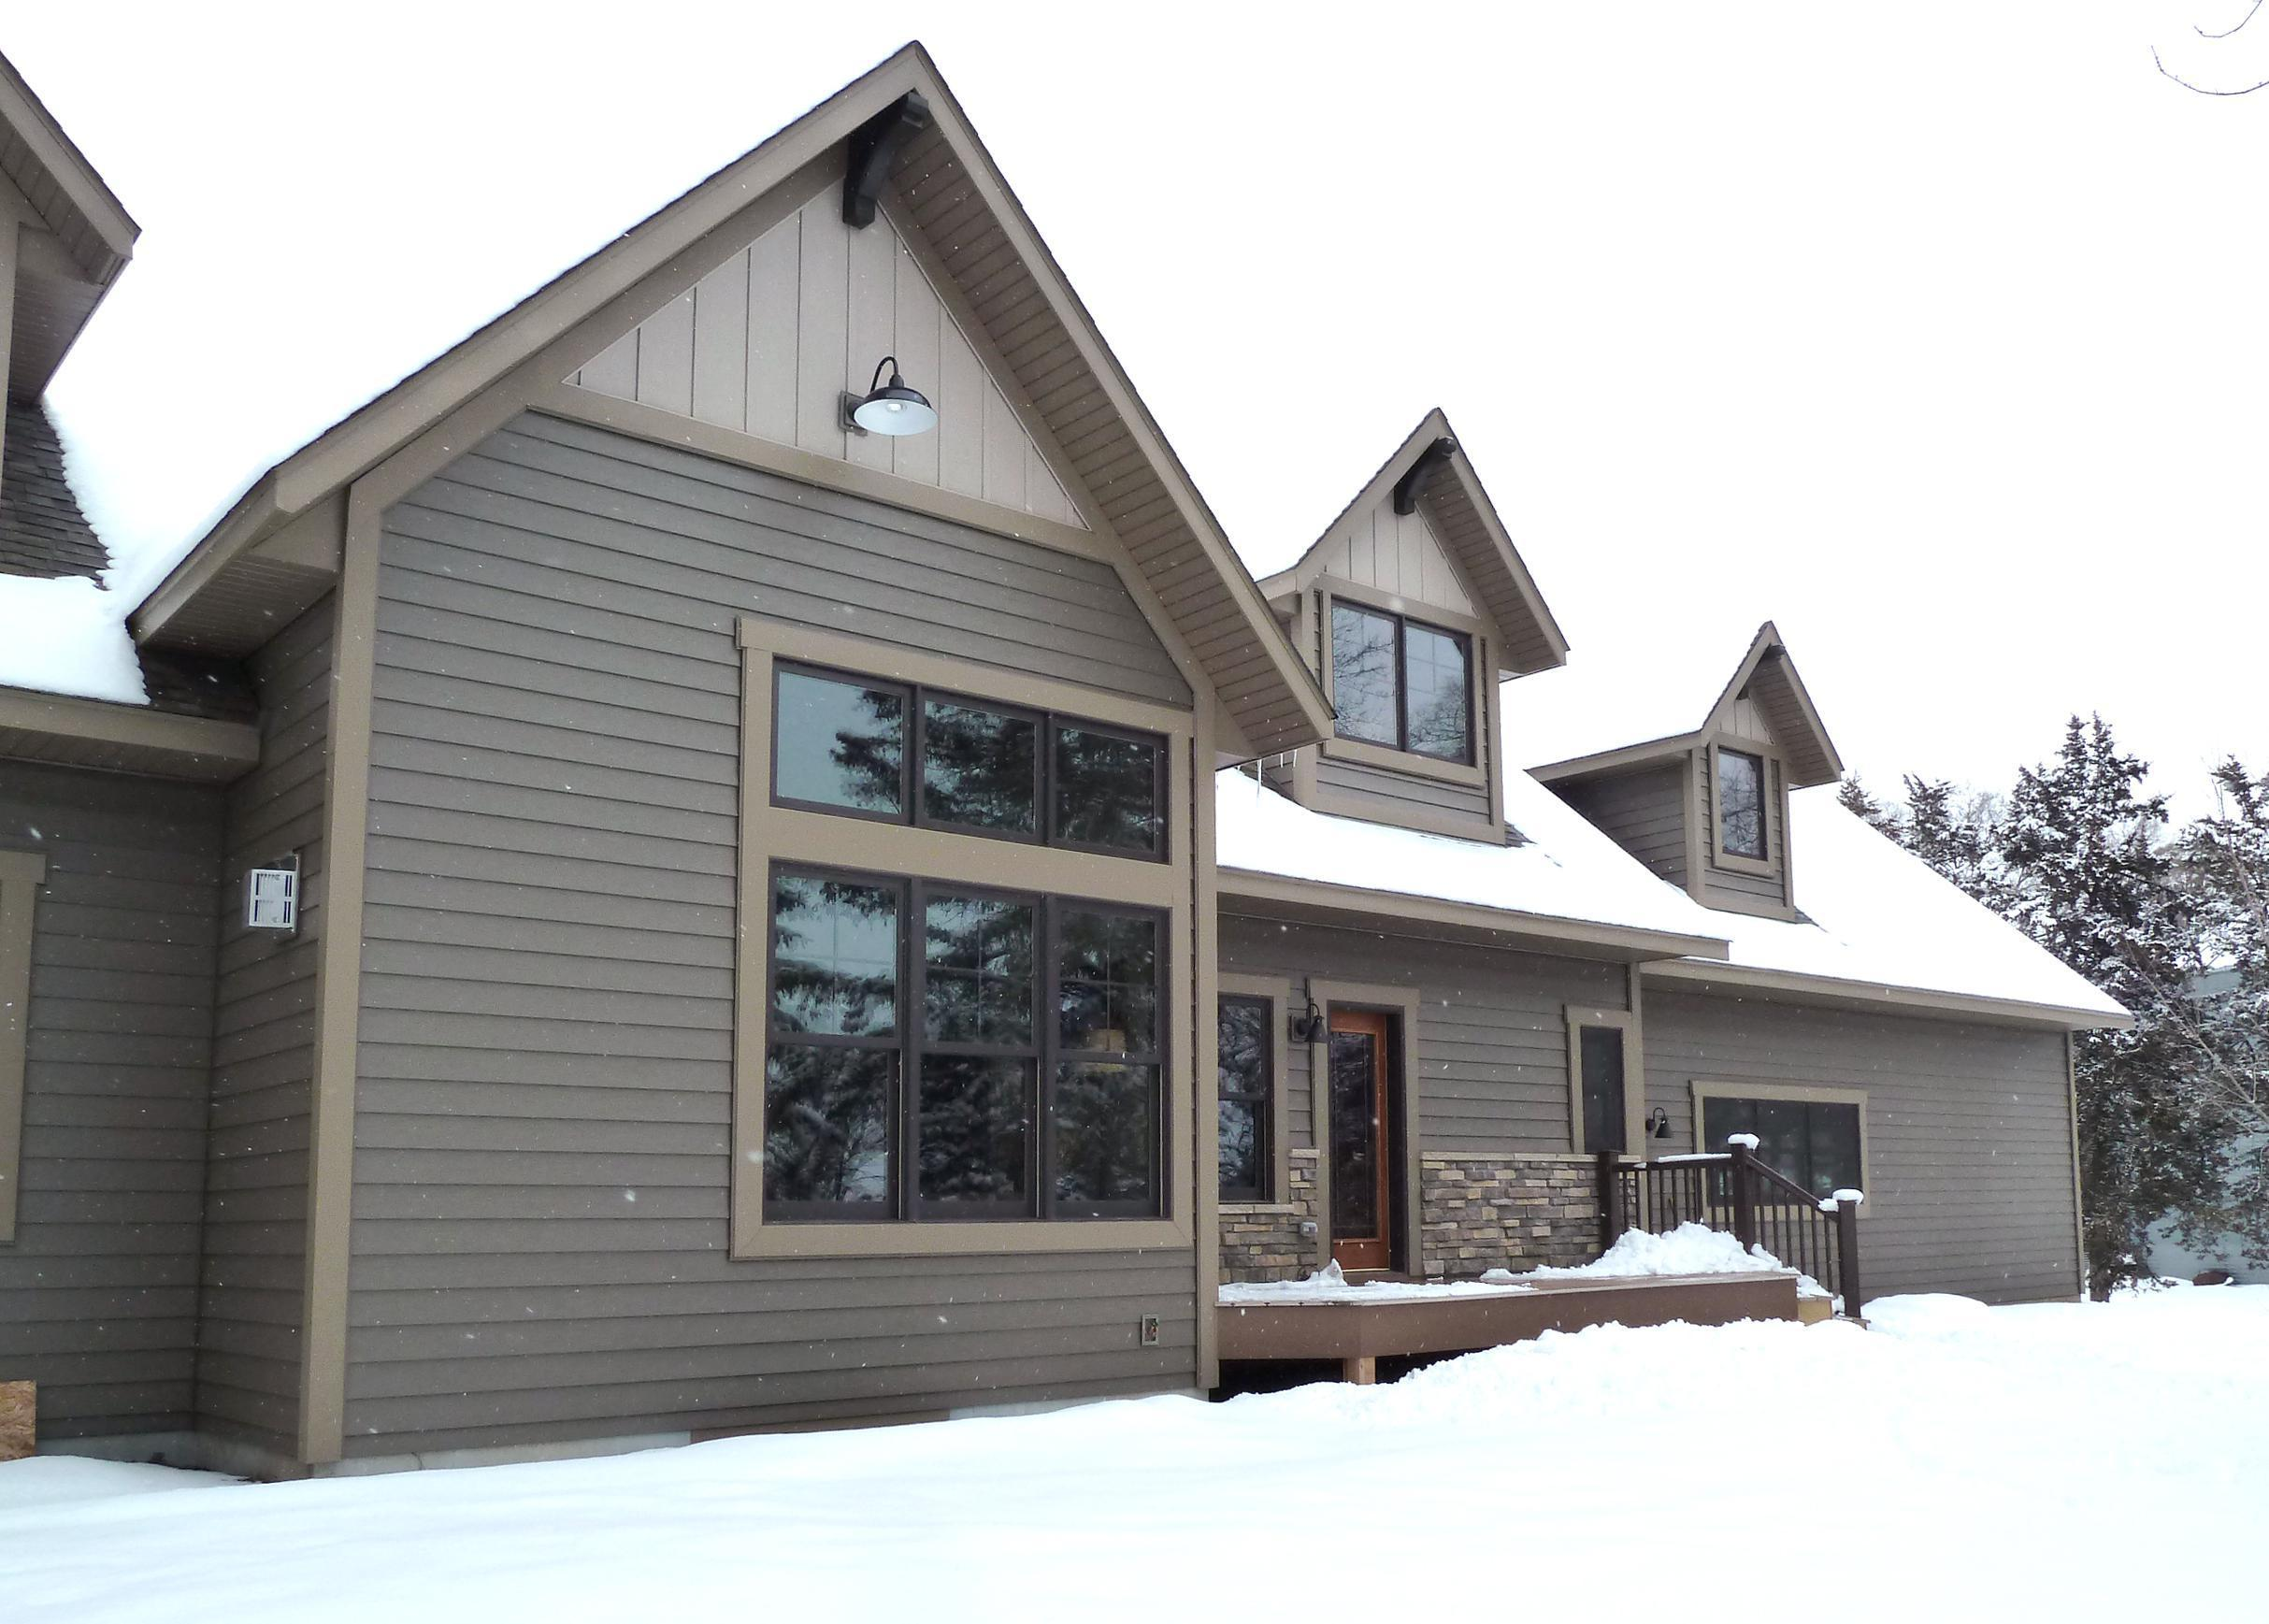 EDCO's steel siding in sandstone finish.